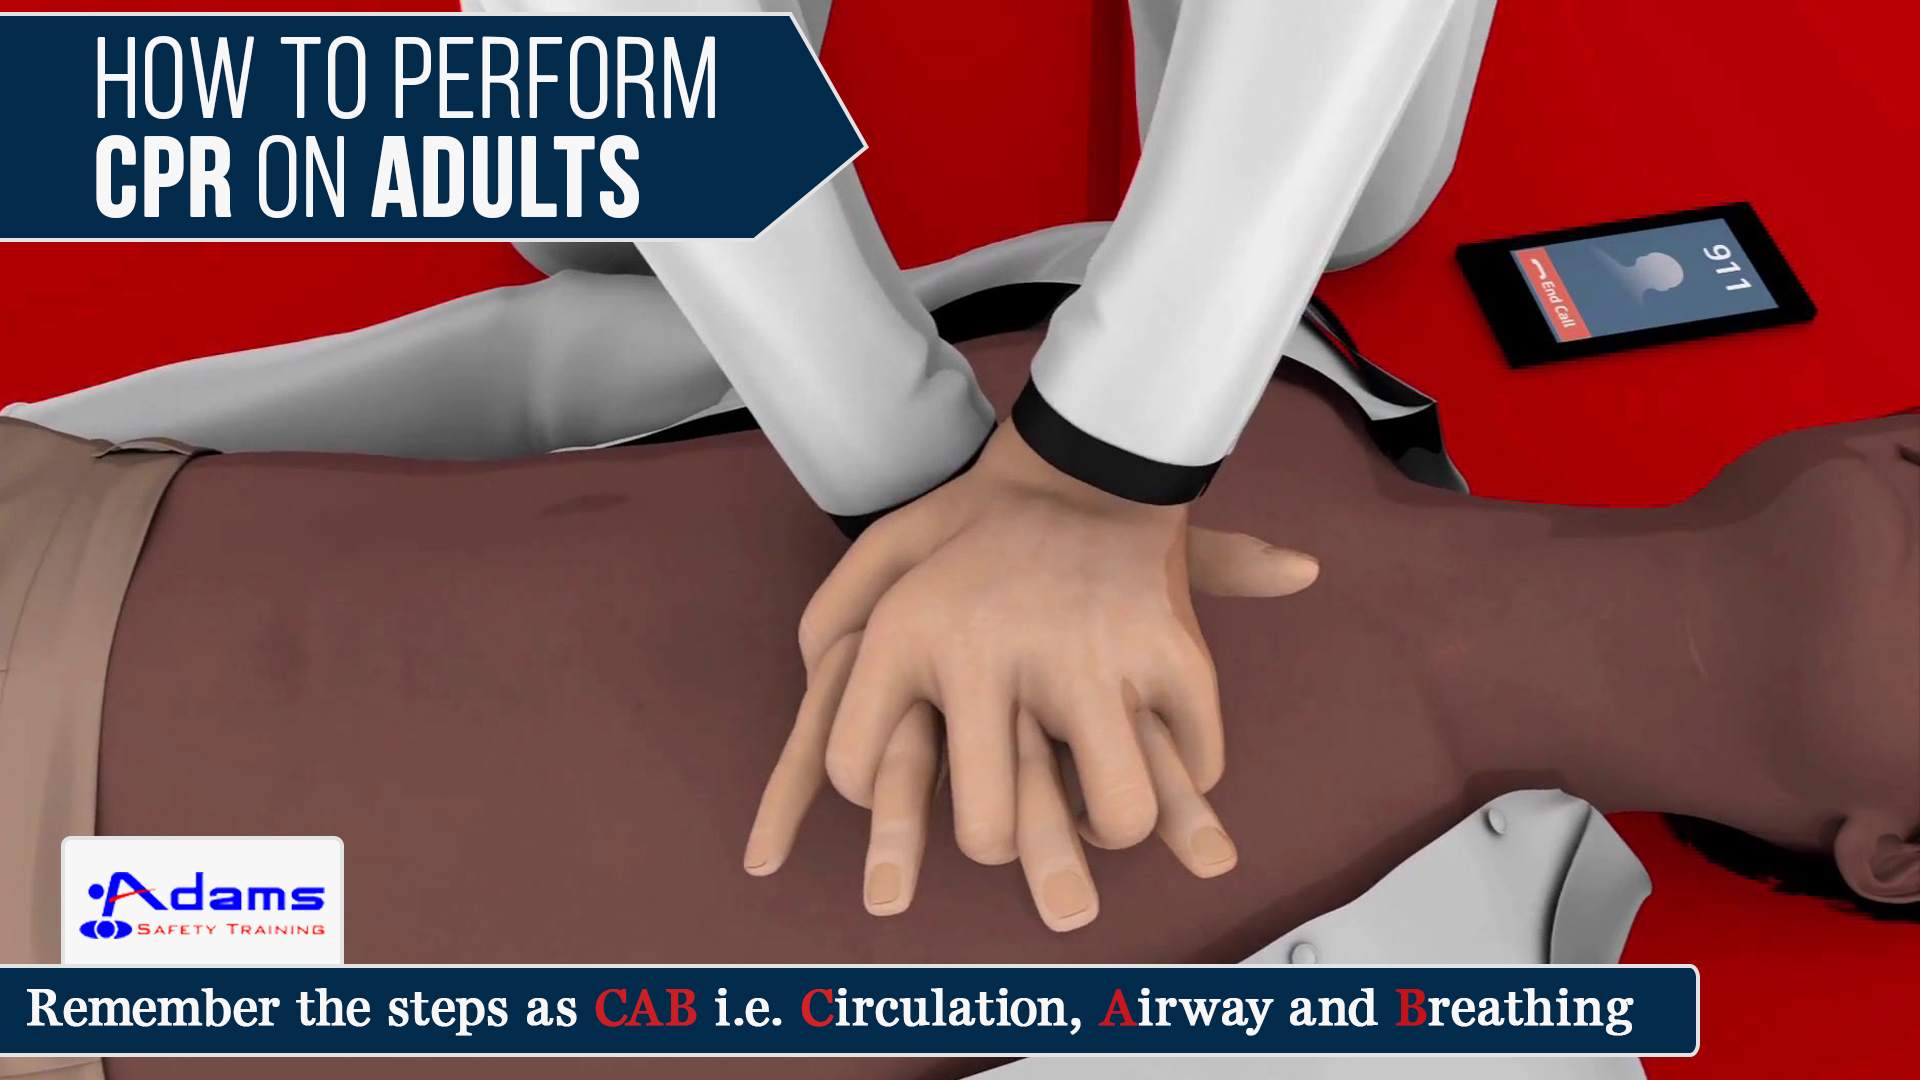 How to perform CPR on adults